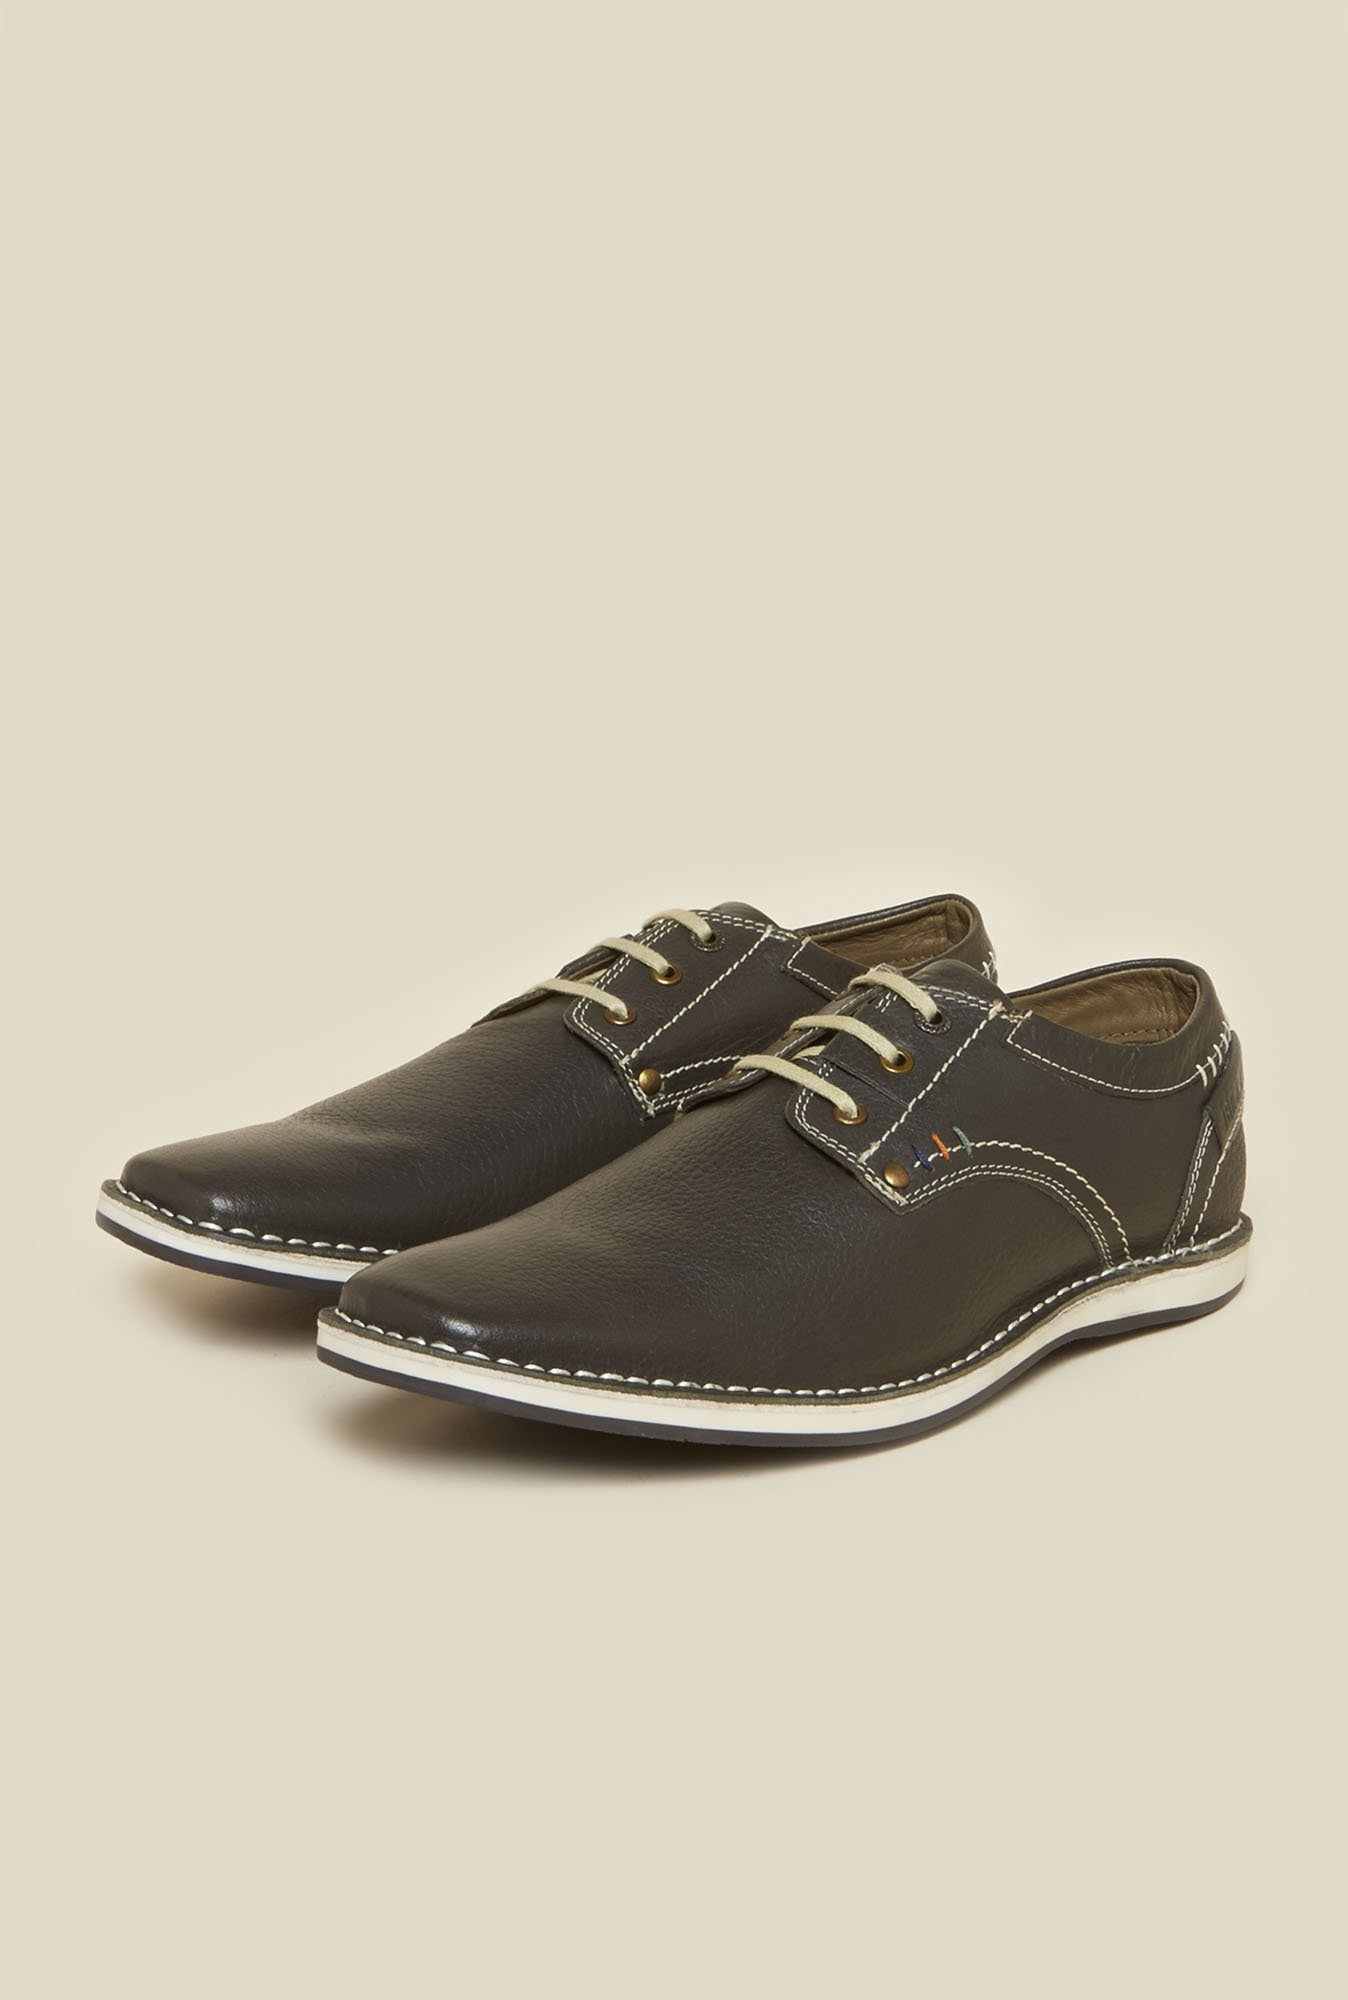 Buckaroo Roldanto Olive Derby Shoes